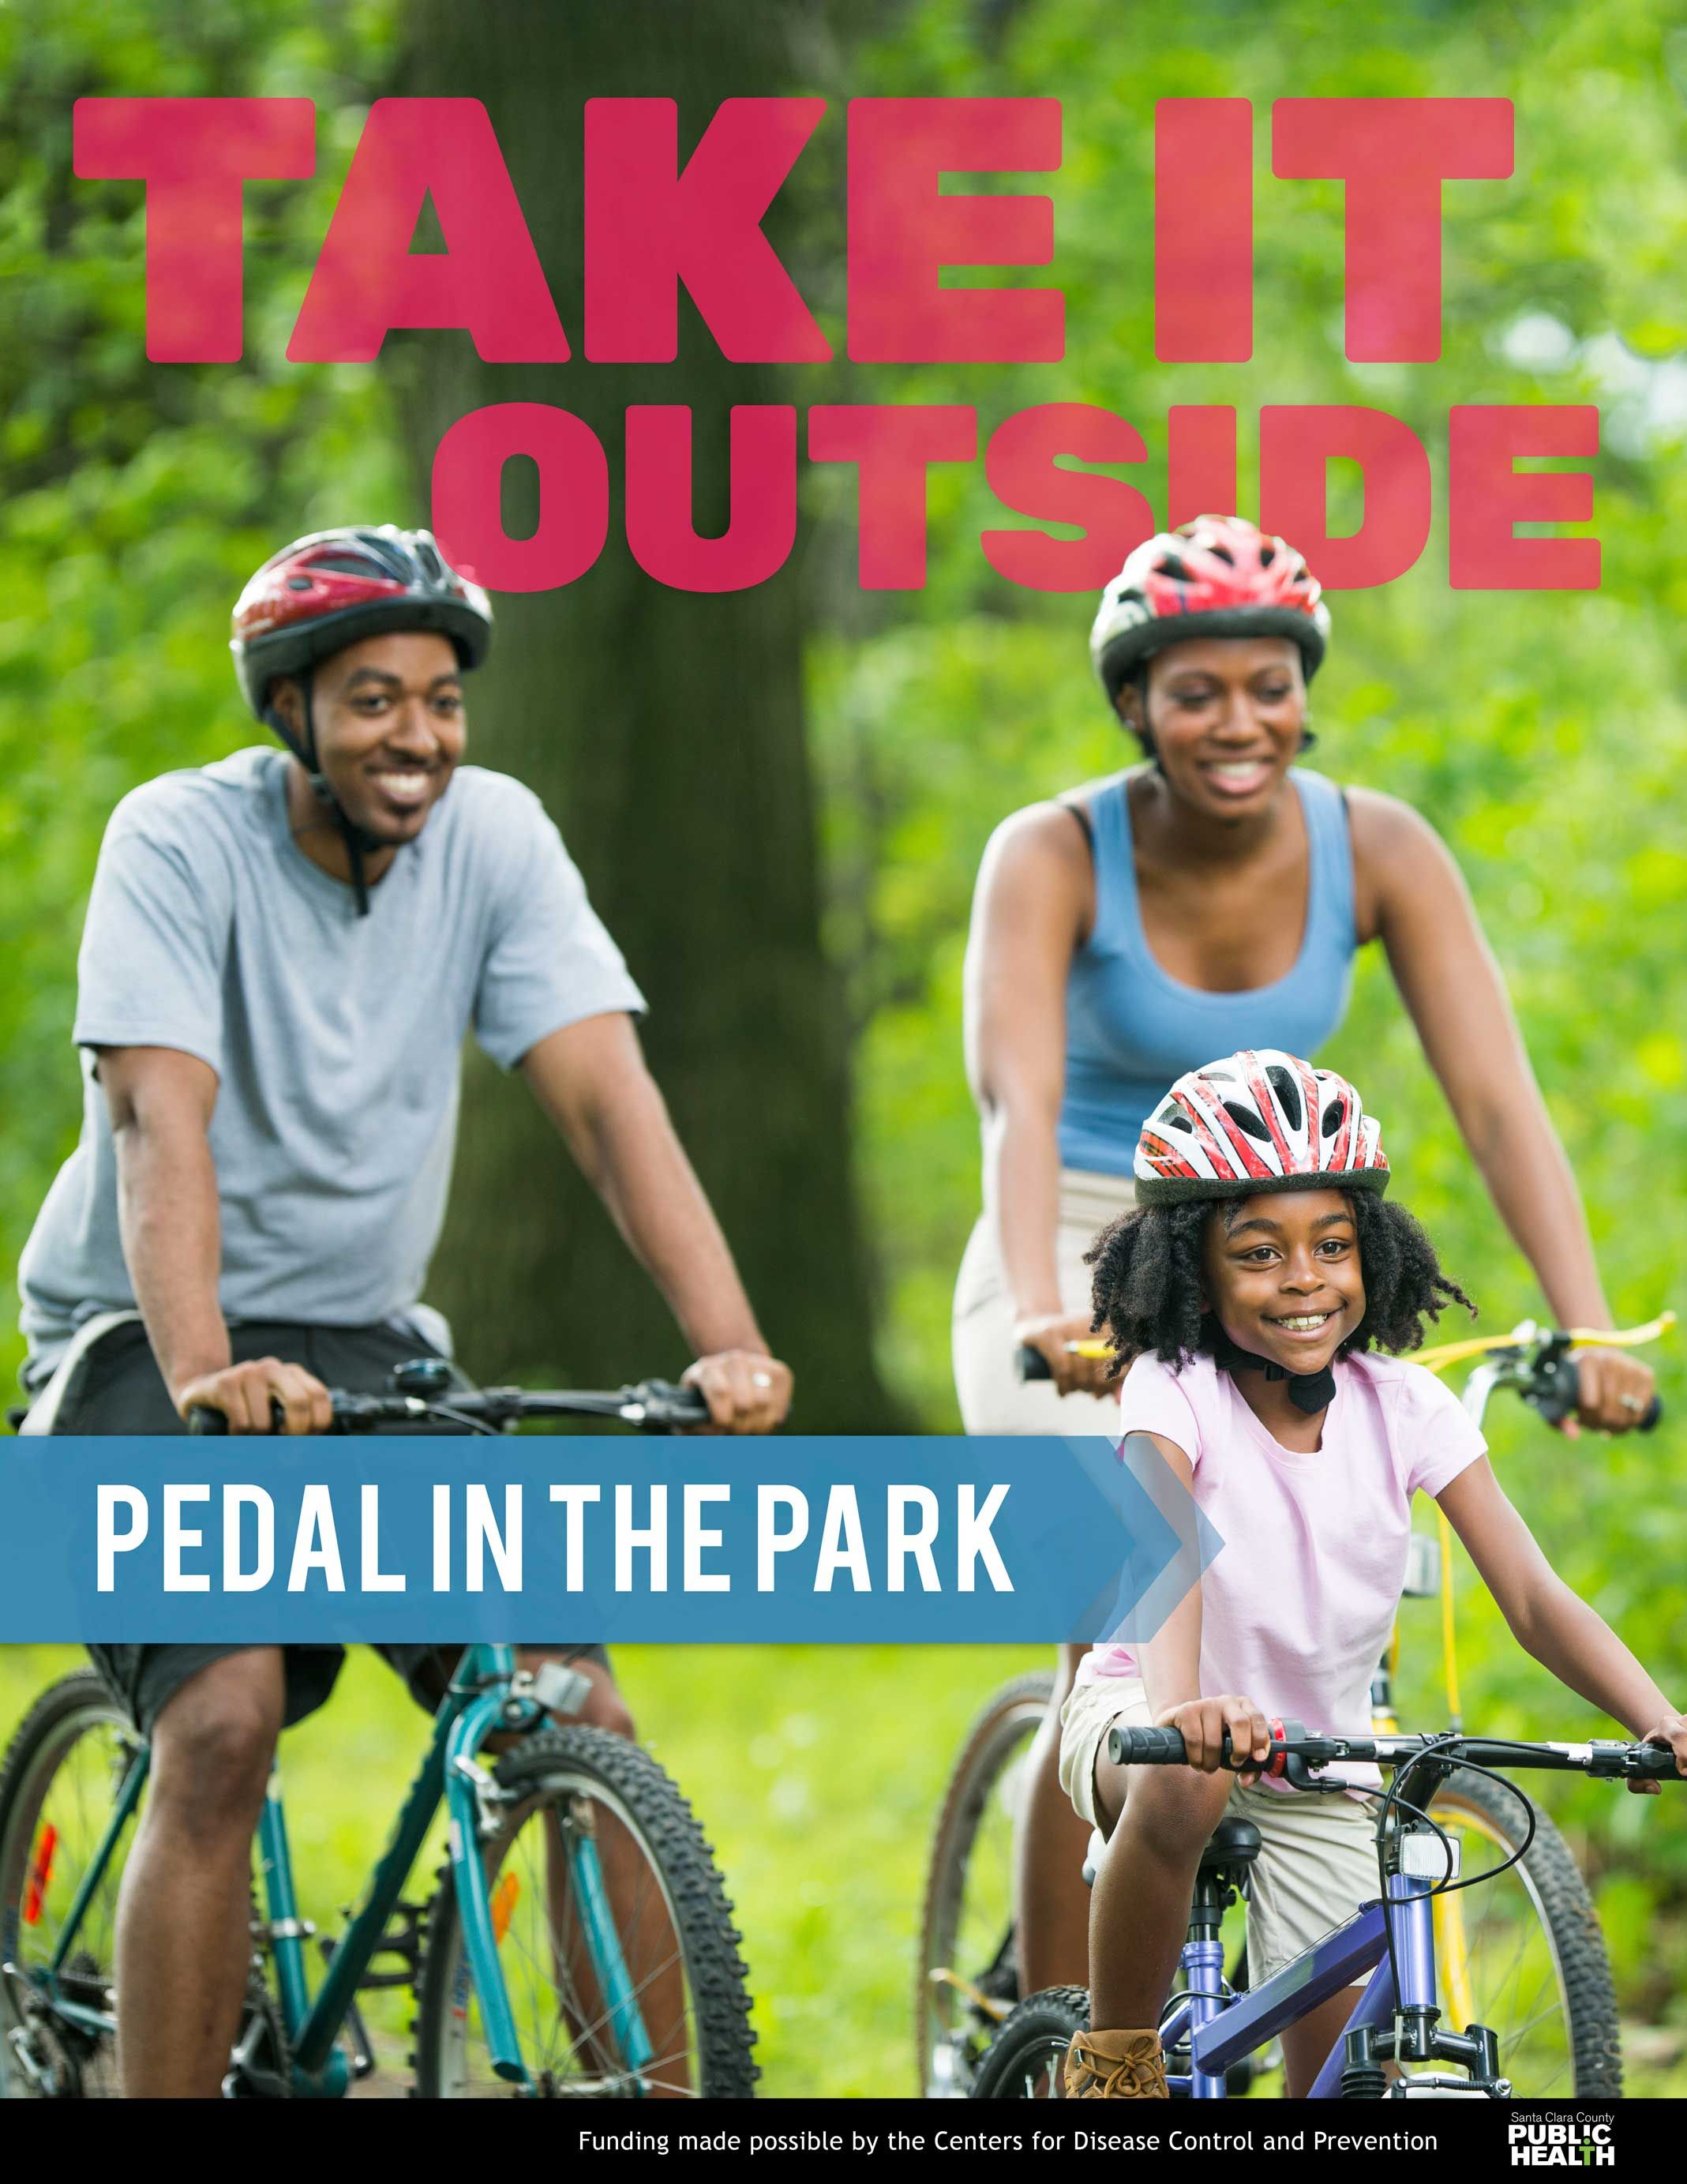 Learn about our take it outside campaign combining active